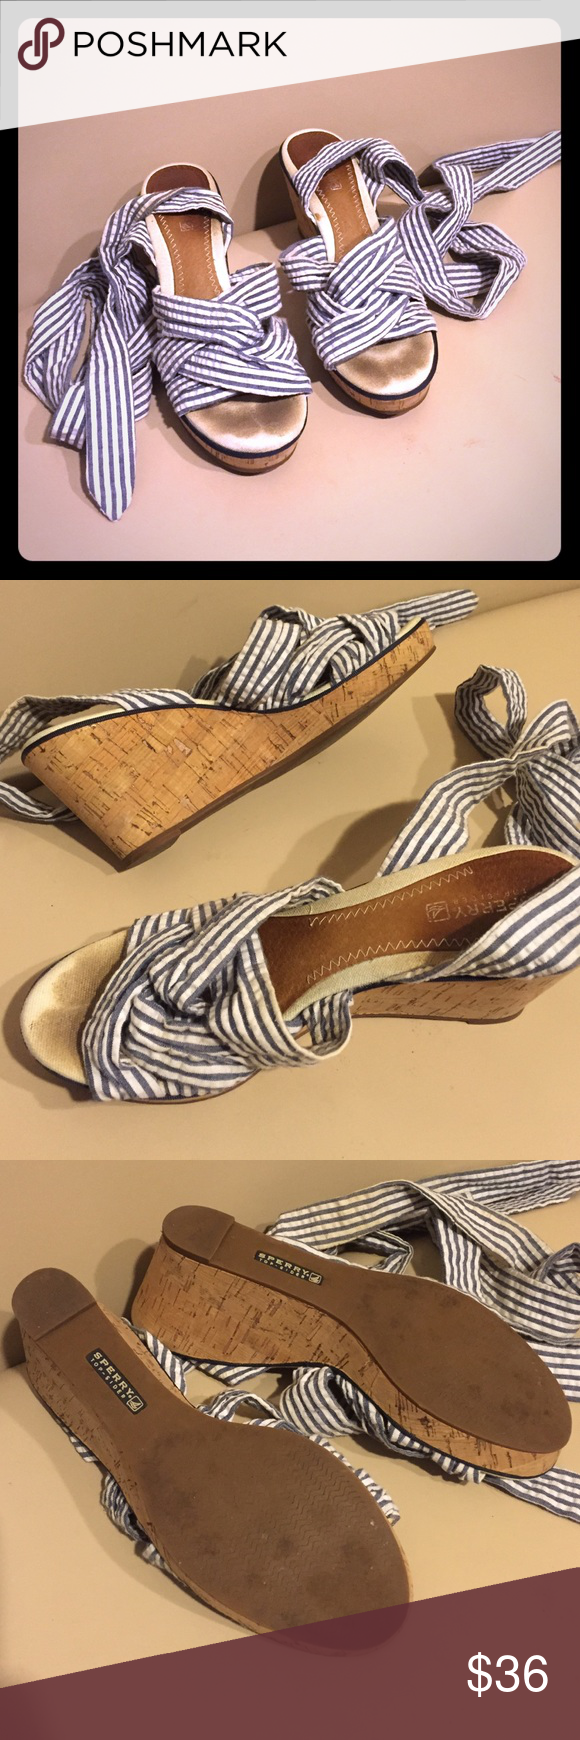 Stripped Lace-Up Sperry Top-Sider Wedges Size 9 Cute and fun stripped lace up cork wedges by Sperry size 9. Overall great condition, but they do need to be cleaned a little. So much life left in them! Sperry Top-Sider Shoes Wedges